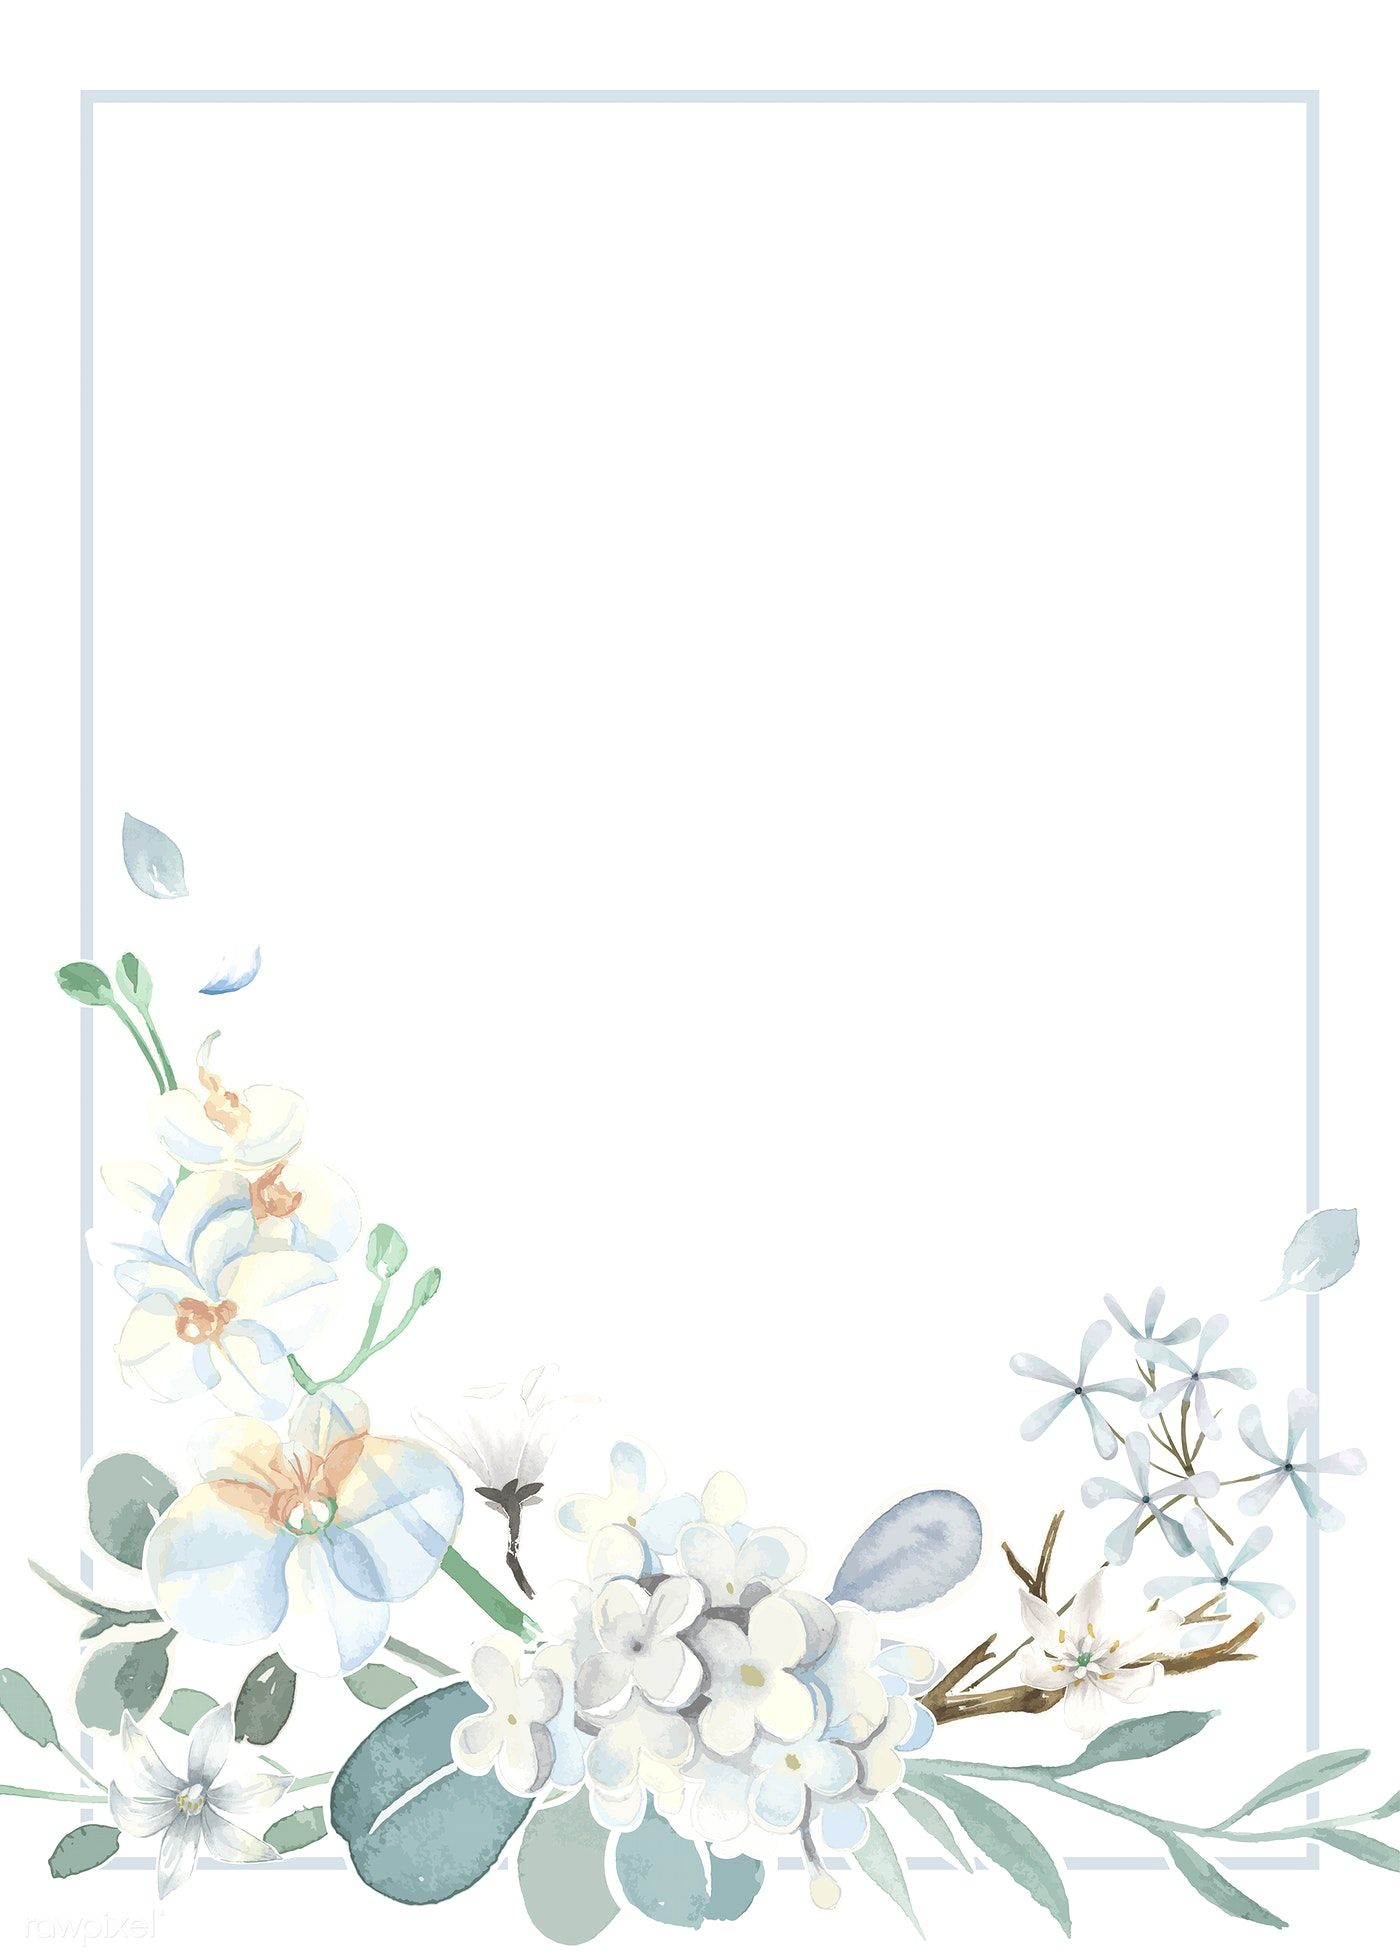 Download premium vector of Invitation card with a light blue theme 1400x1960